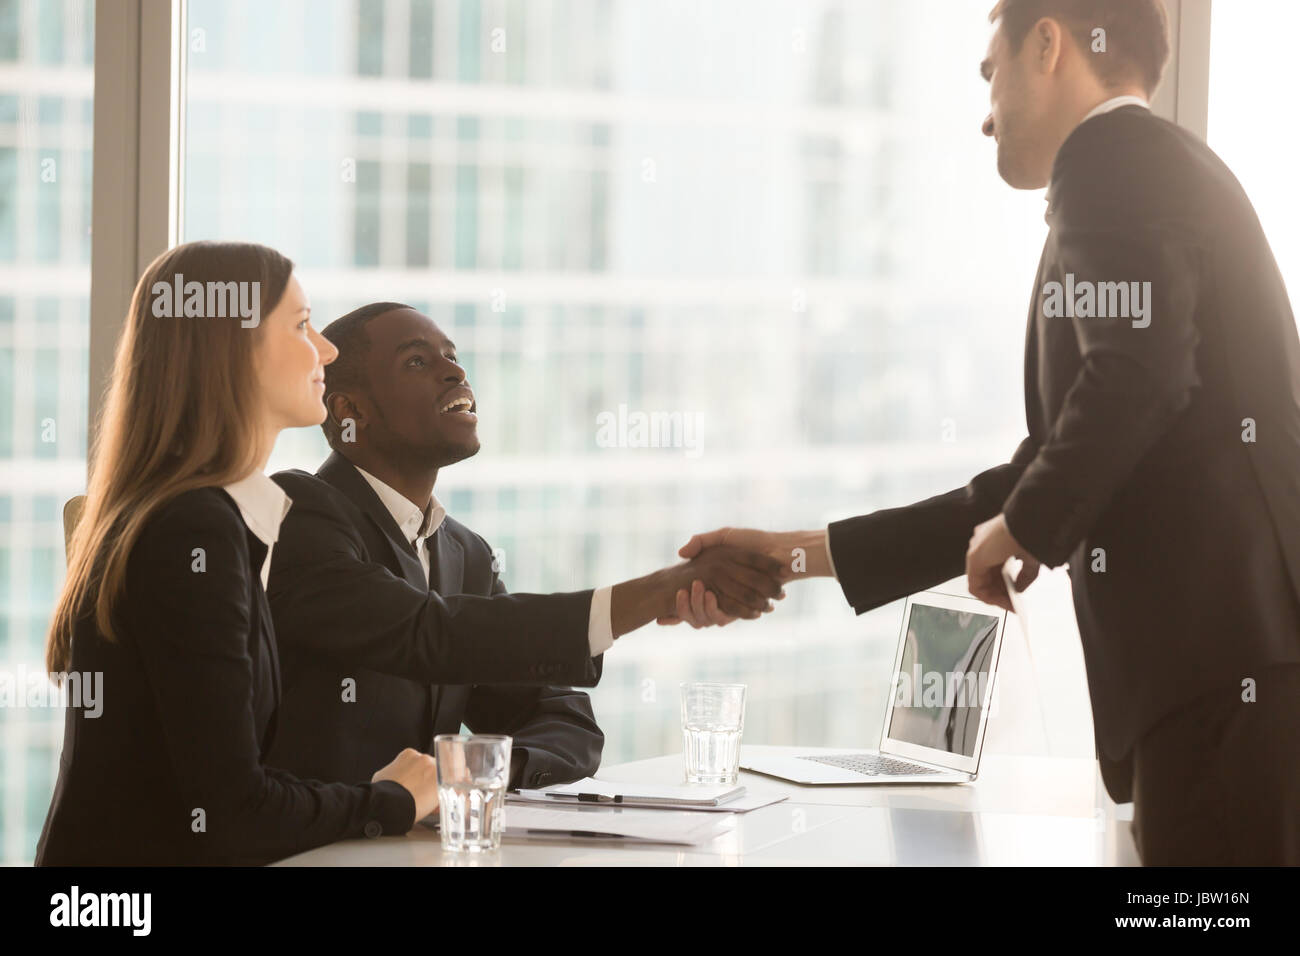 Friendly black and white recruiters sitting at office desk shaking hands with applicant just arrived for interview, Stock Photo